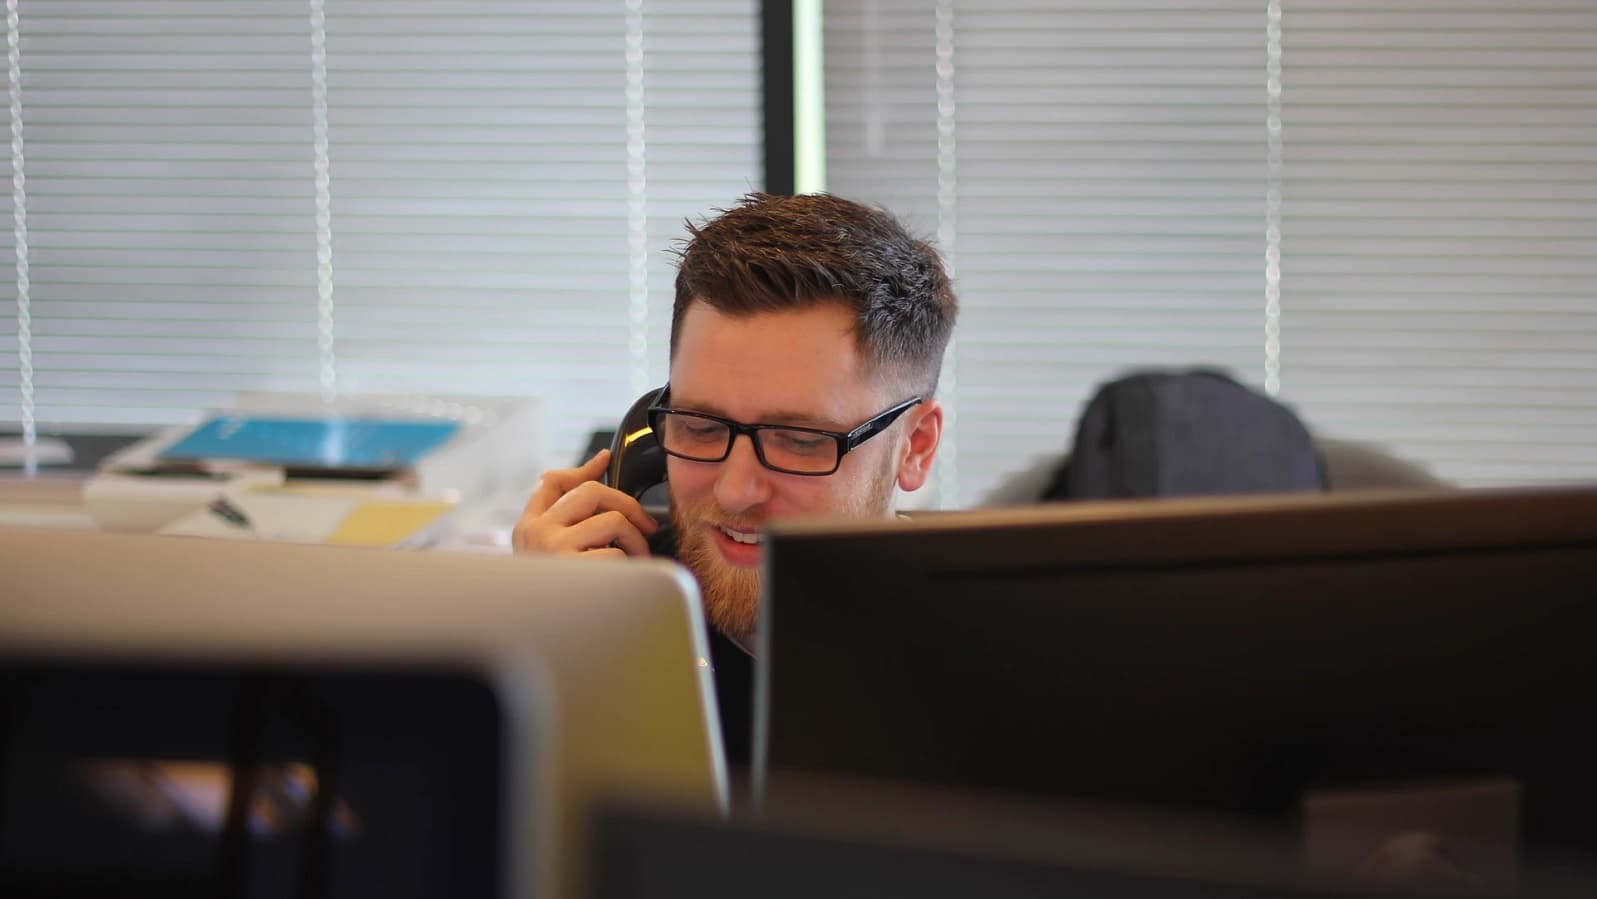 an employee on a phone call with customers